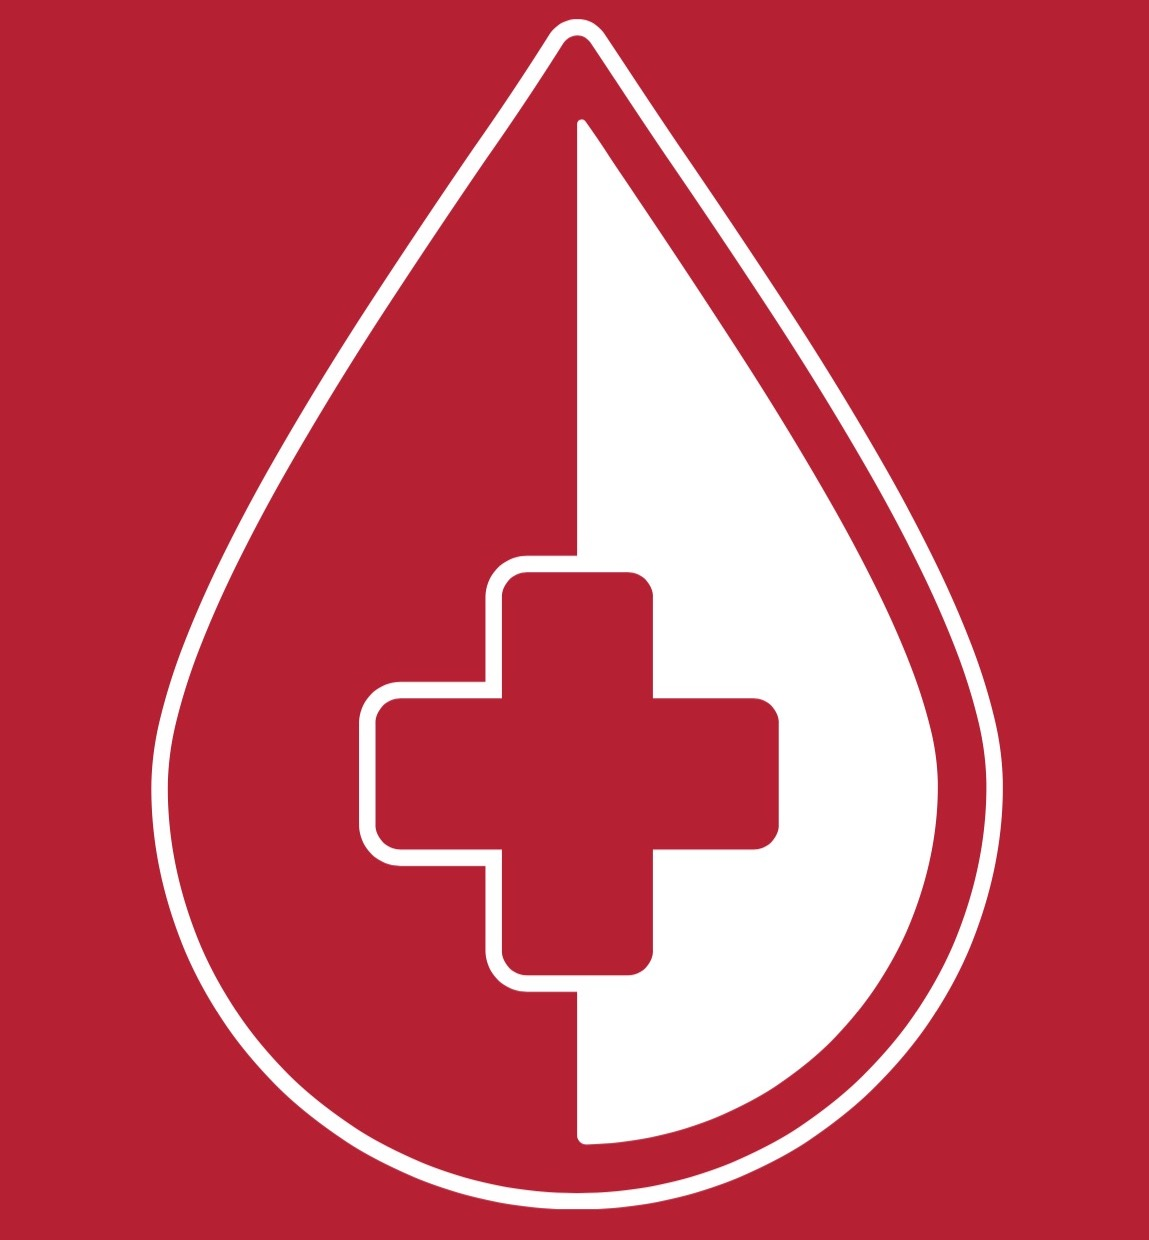 Picture of bleed logo